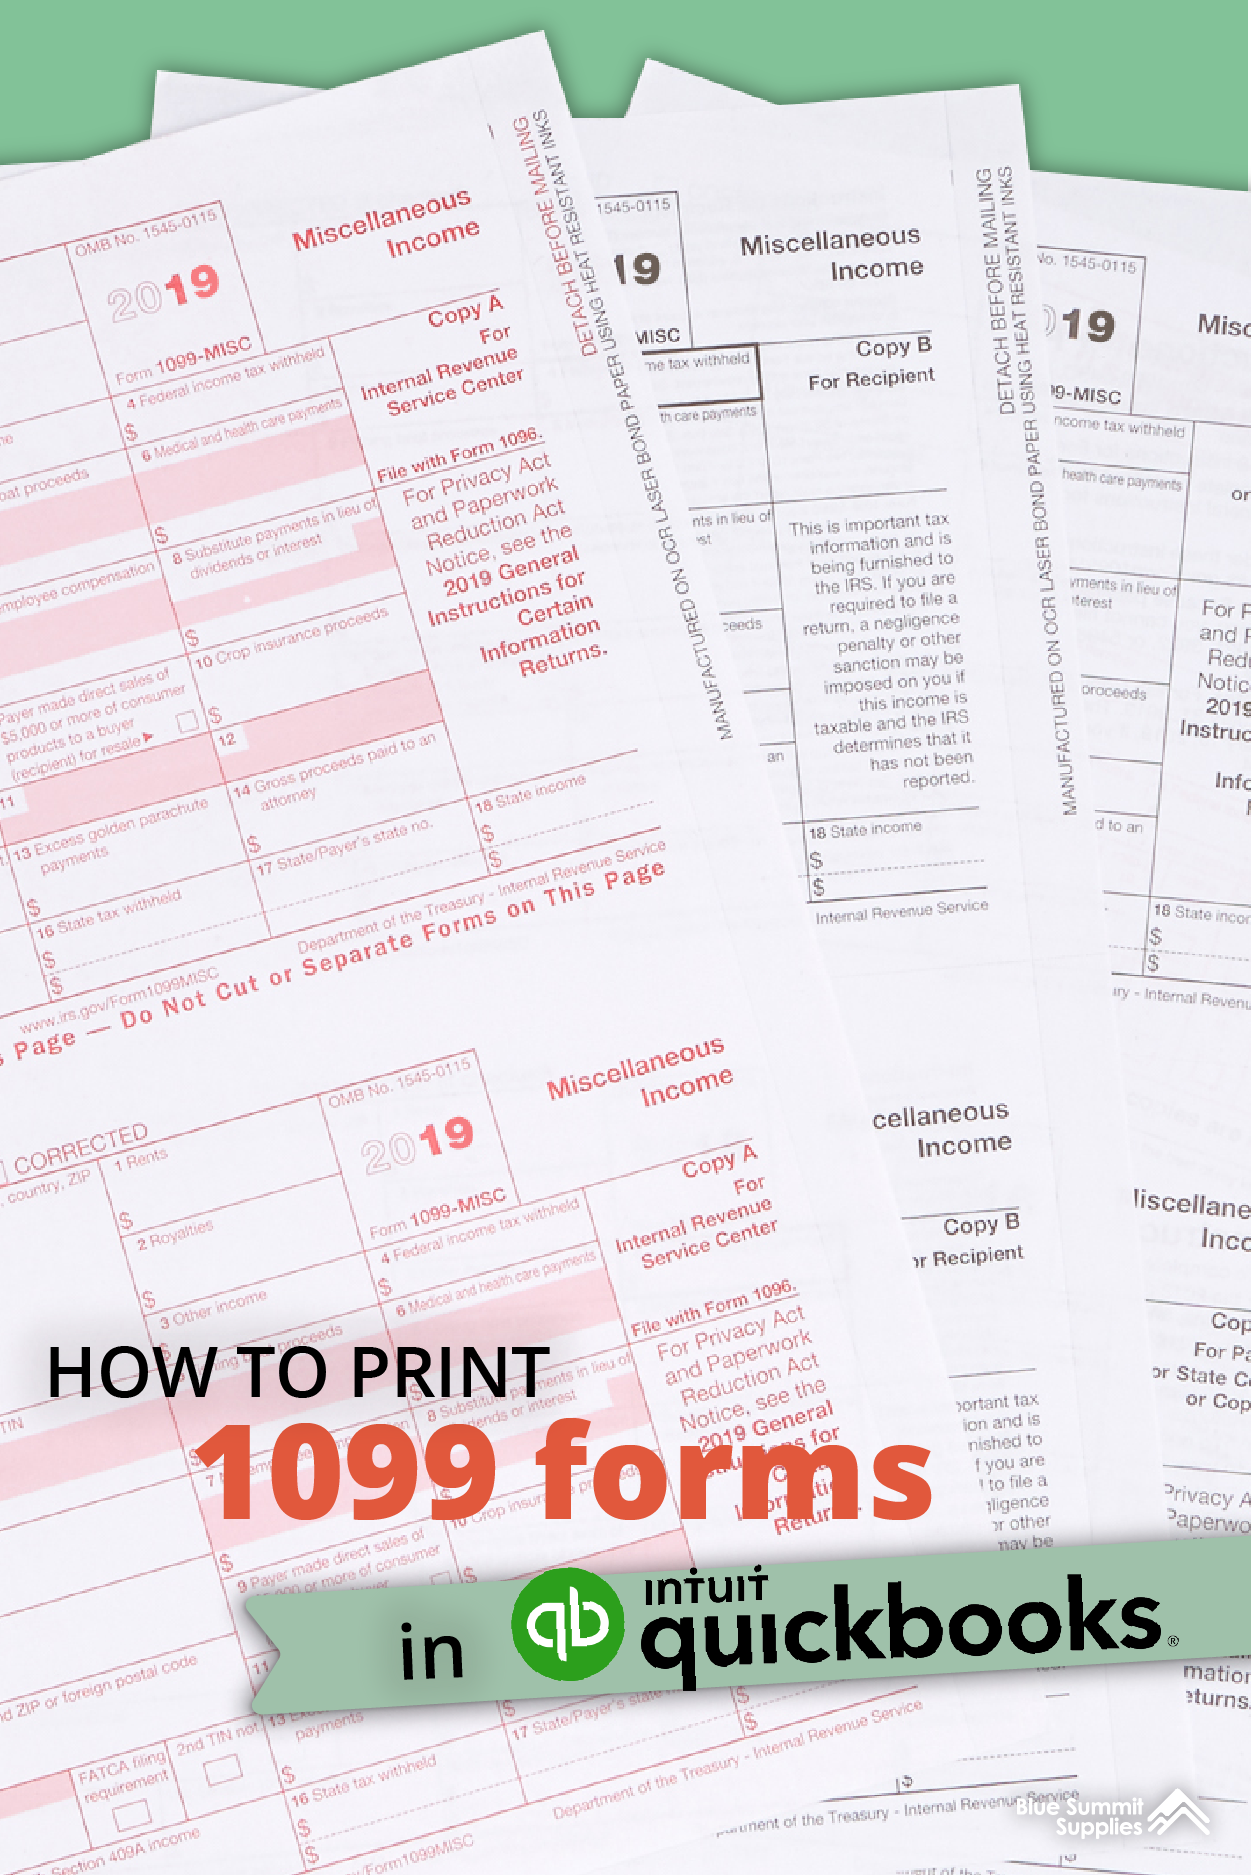 How To Print 1099 Forms In Quickbooks Quickbooks Quickbooks